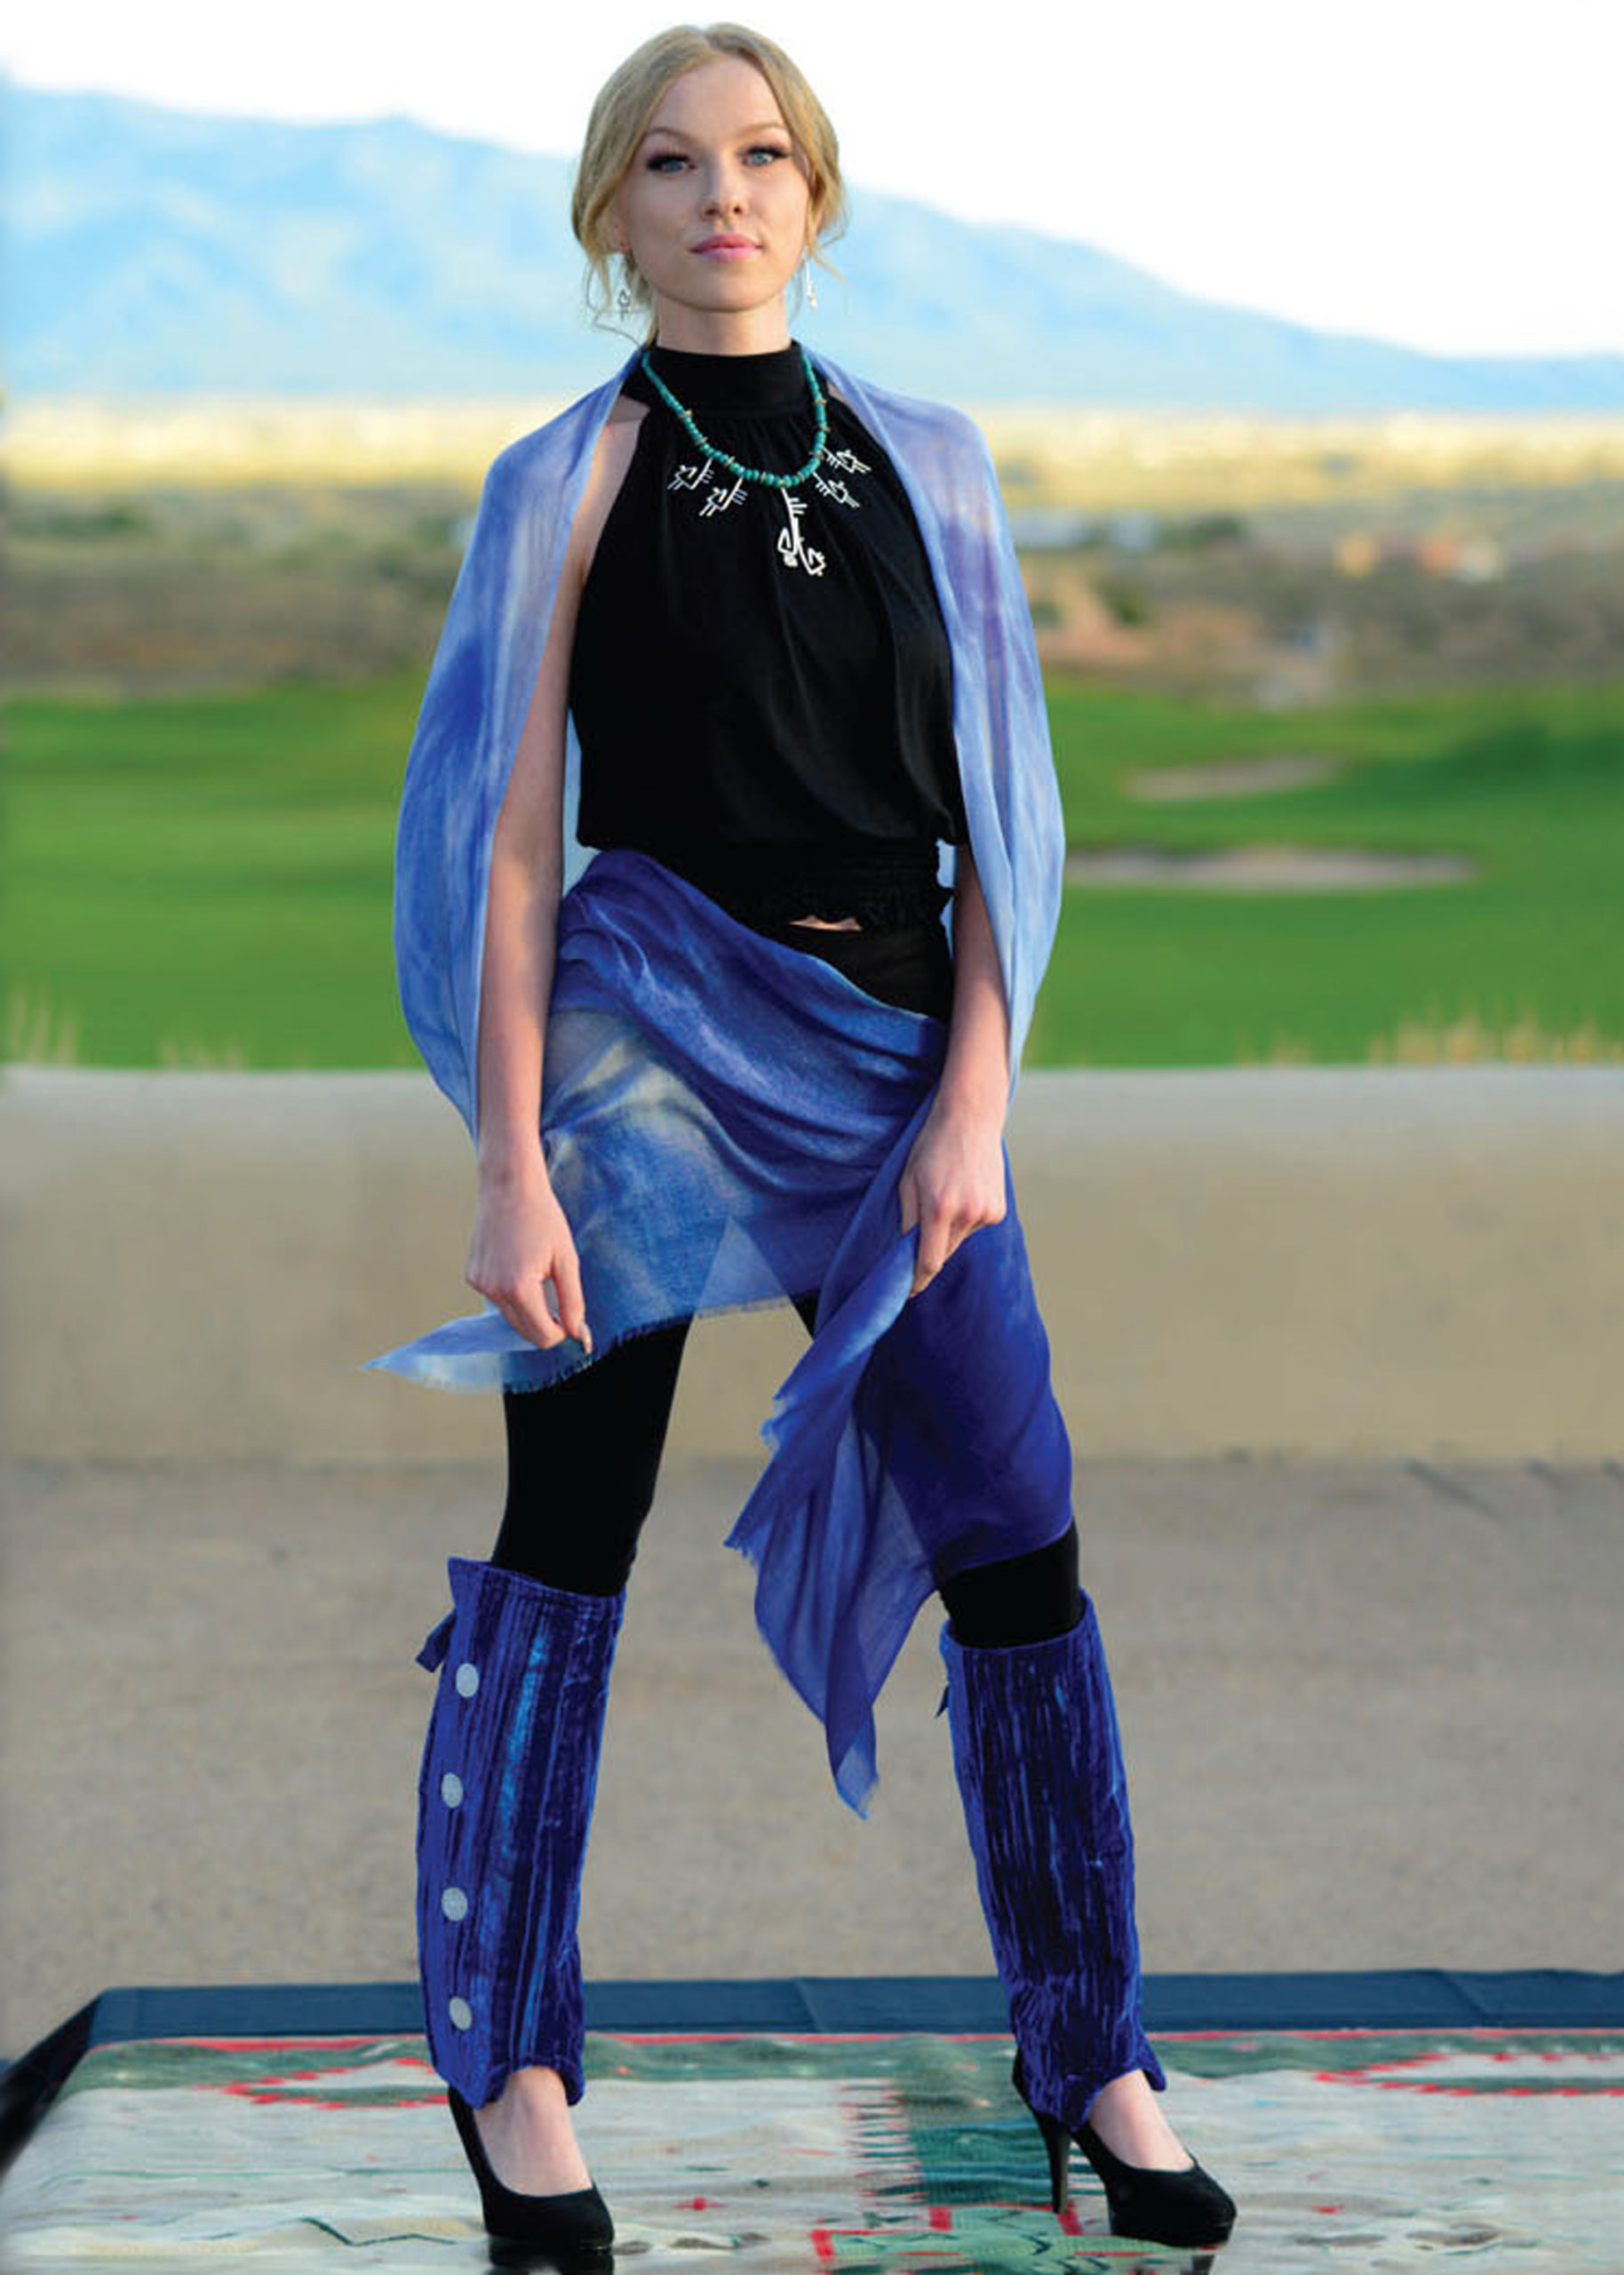 Gazelle Shawls - Cloud Wings Blue - by Gail Russell Art & Apparel, Taos, New Mexico